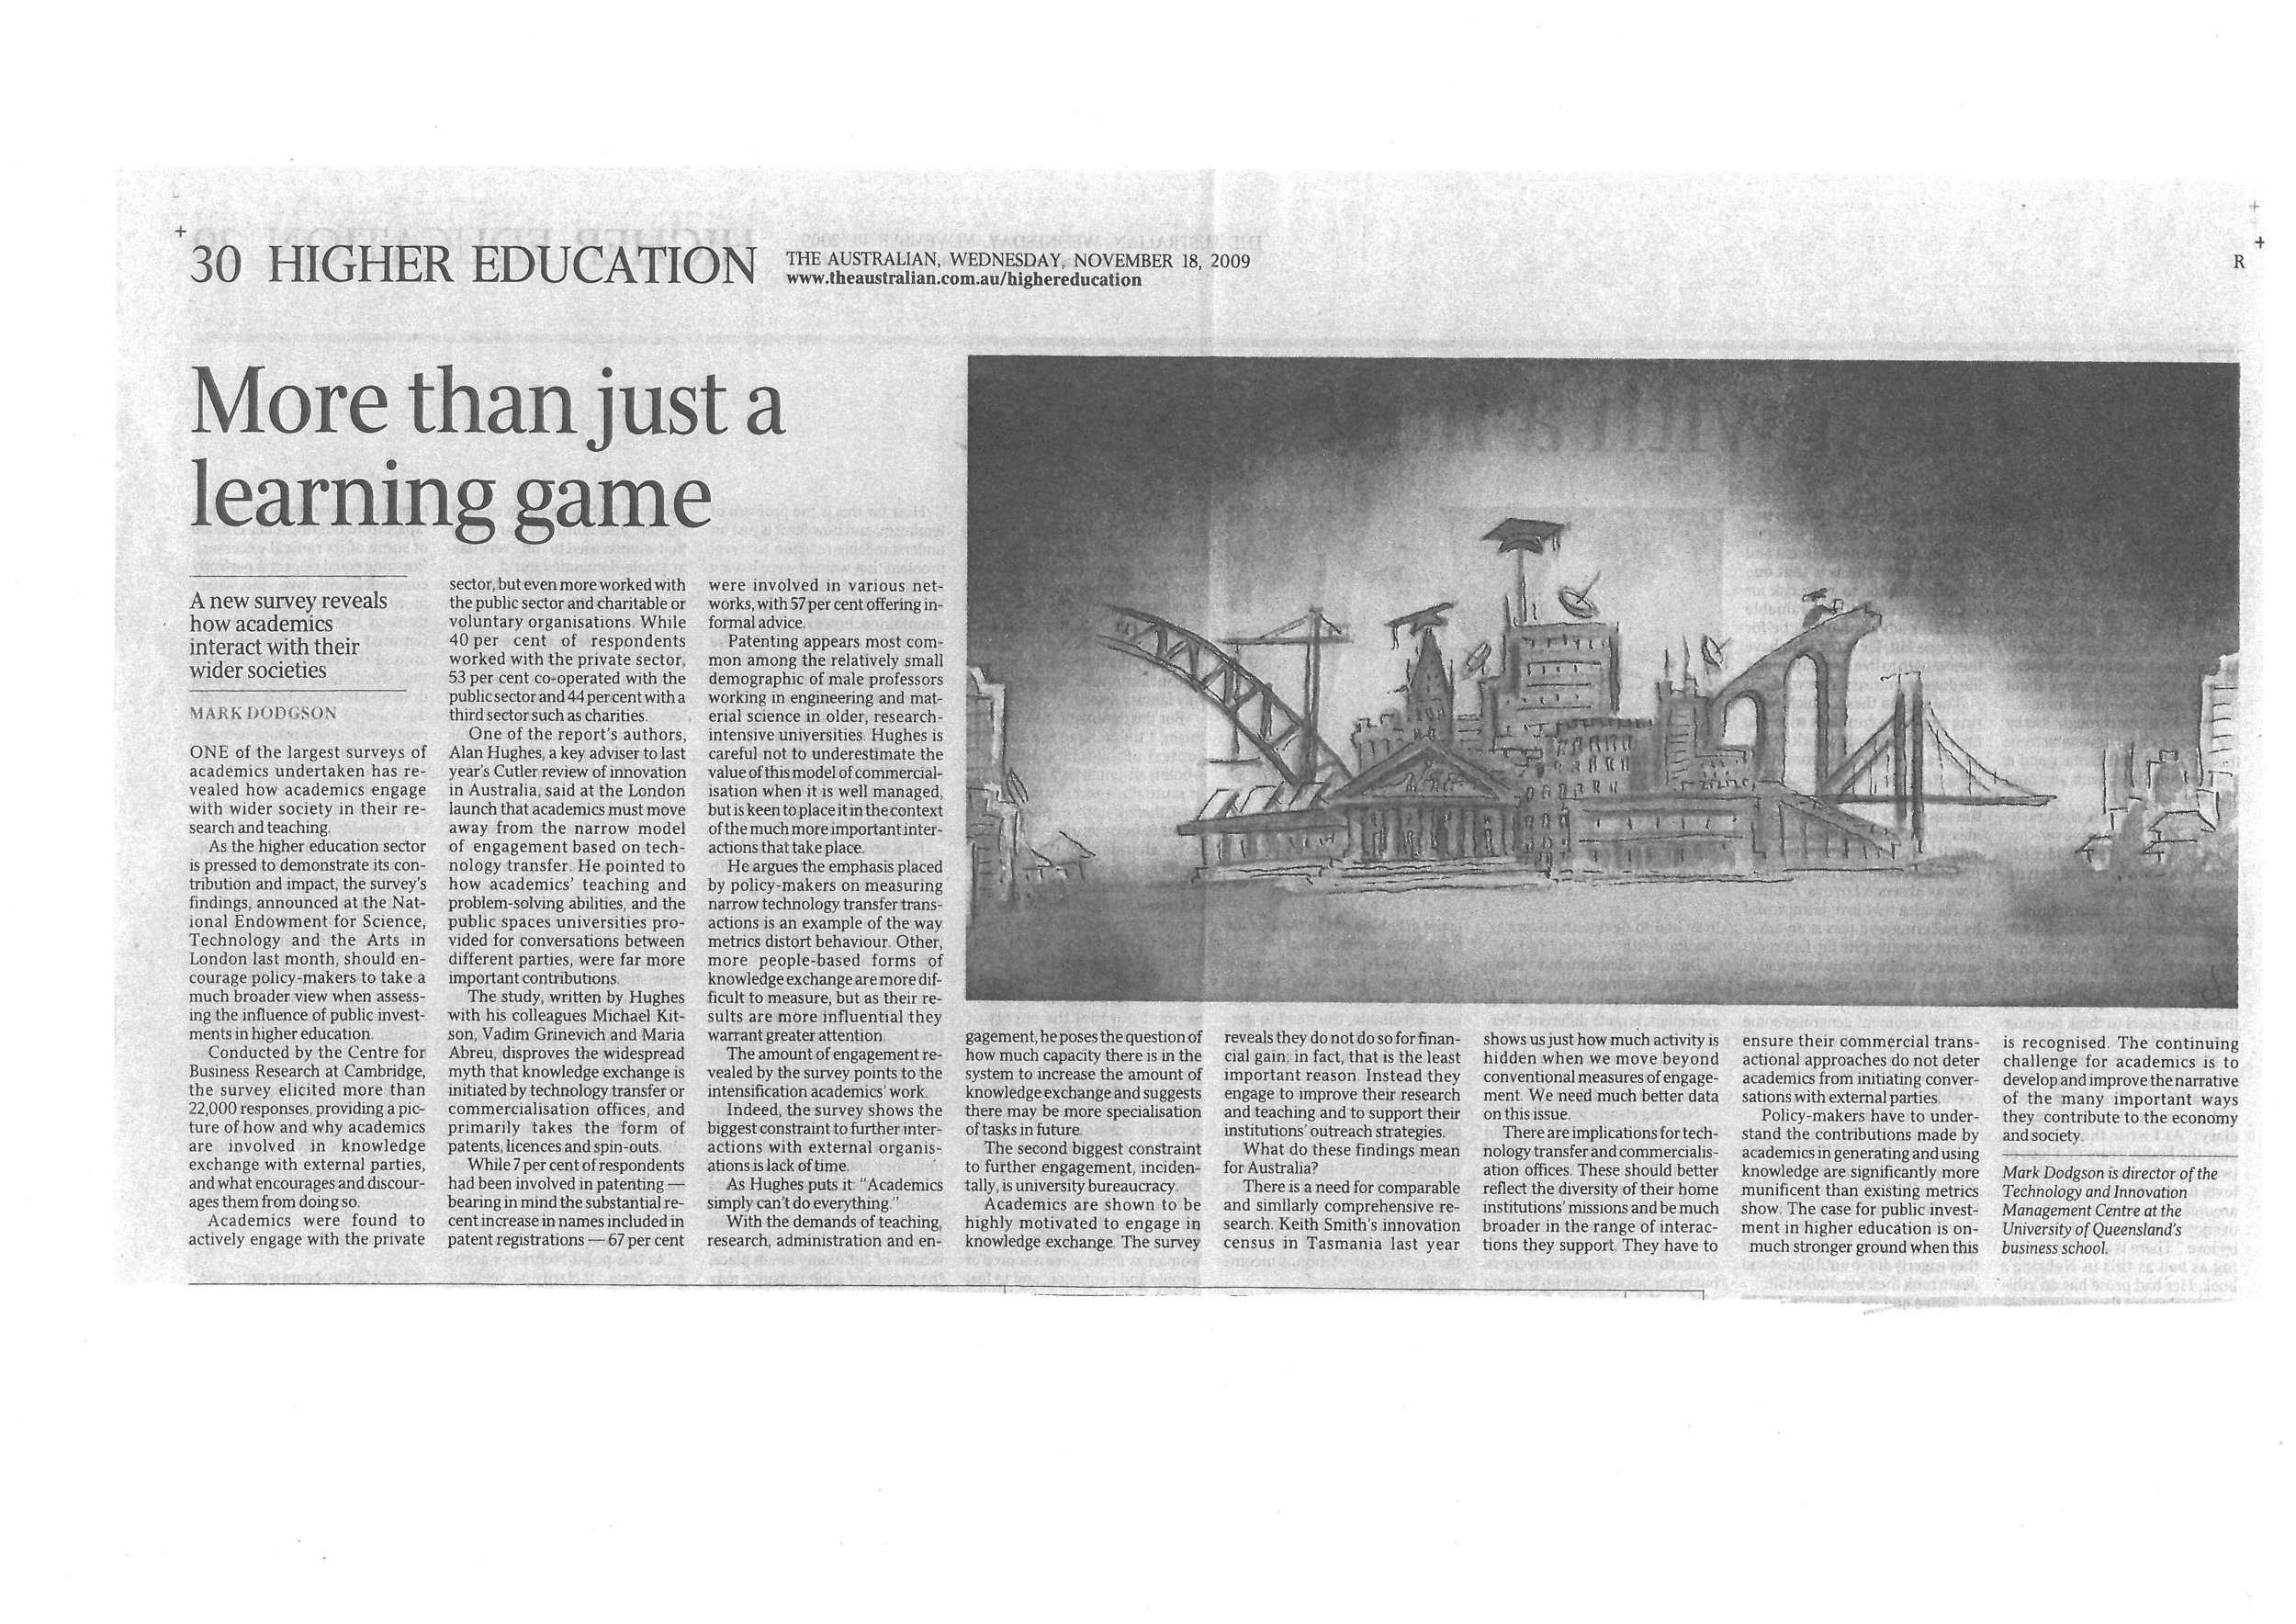 """More than a learning game"" – on a massive survey of academics' views on engagement 18/11/2009"